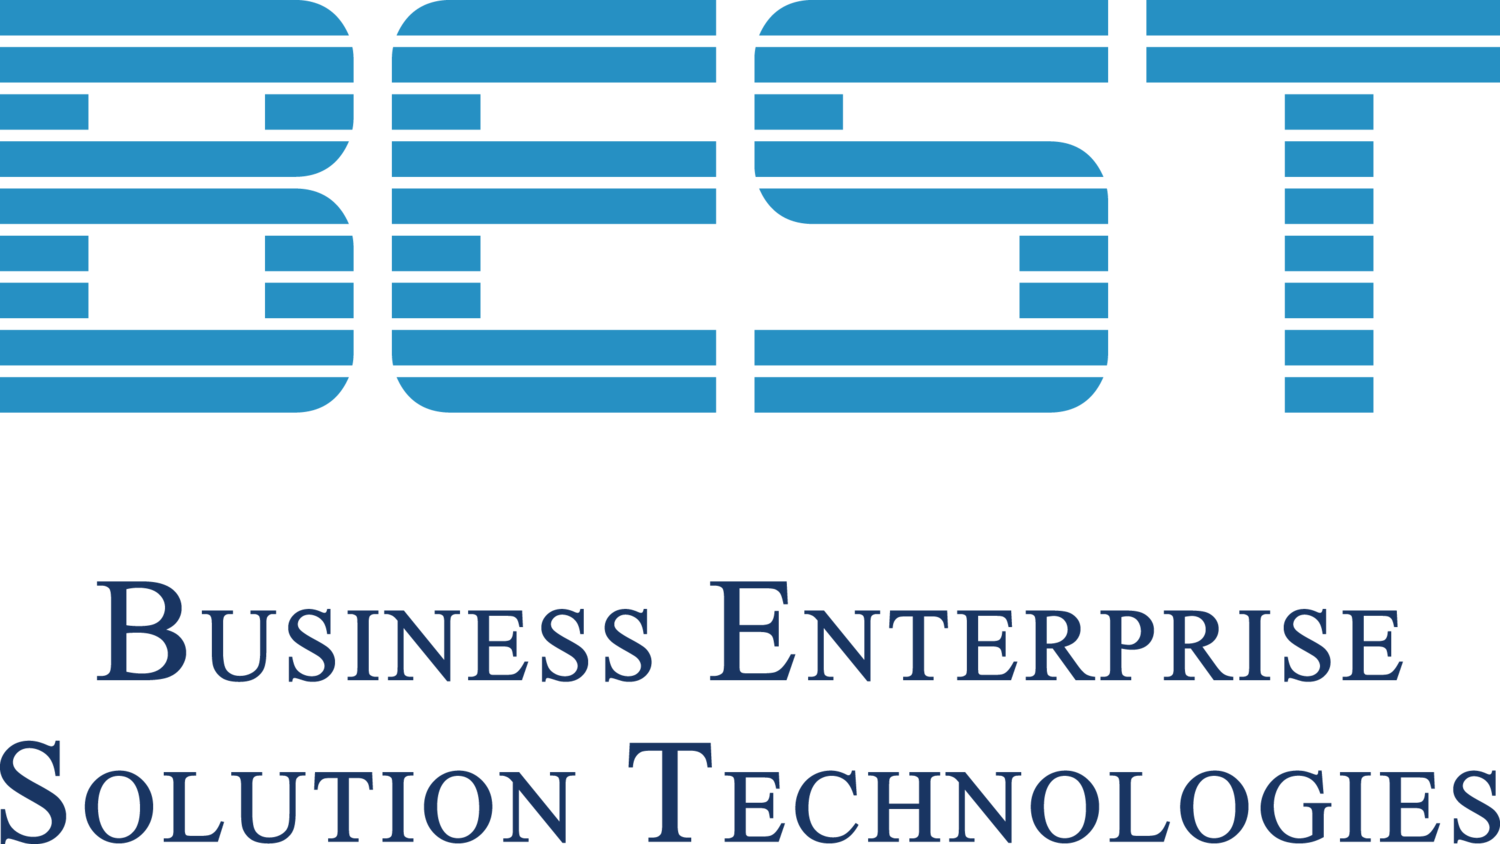 Business Enterprise Solution Technologies